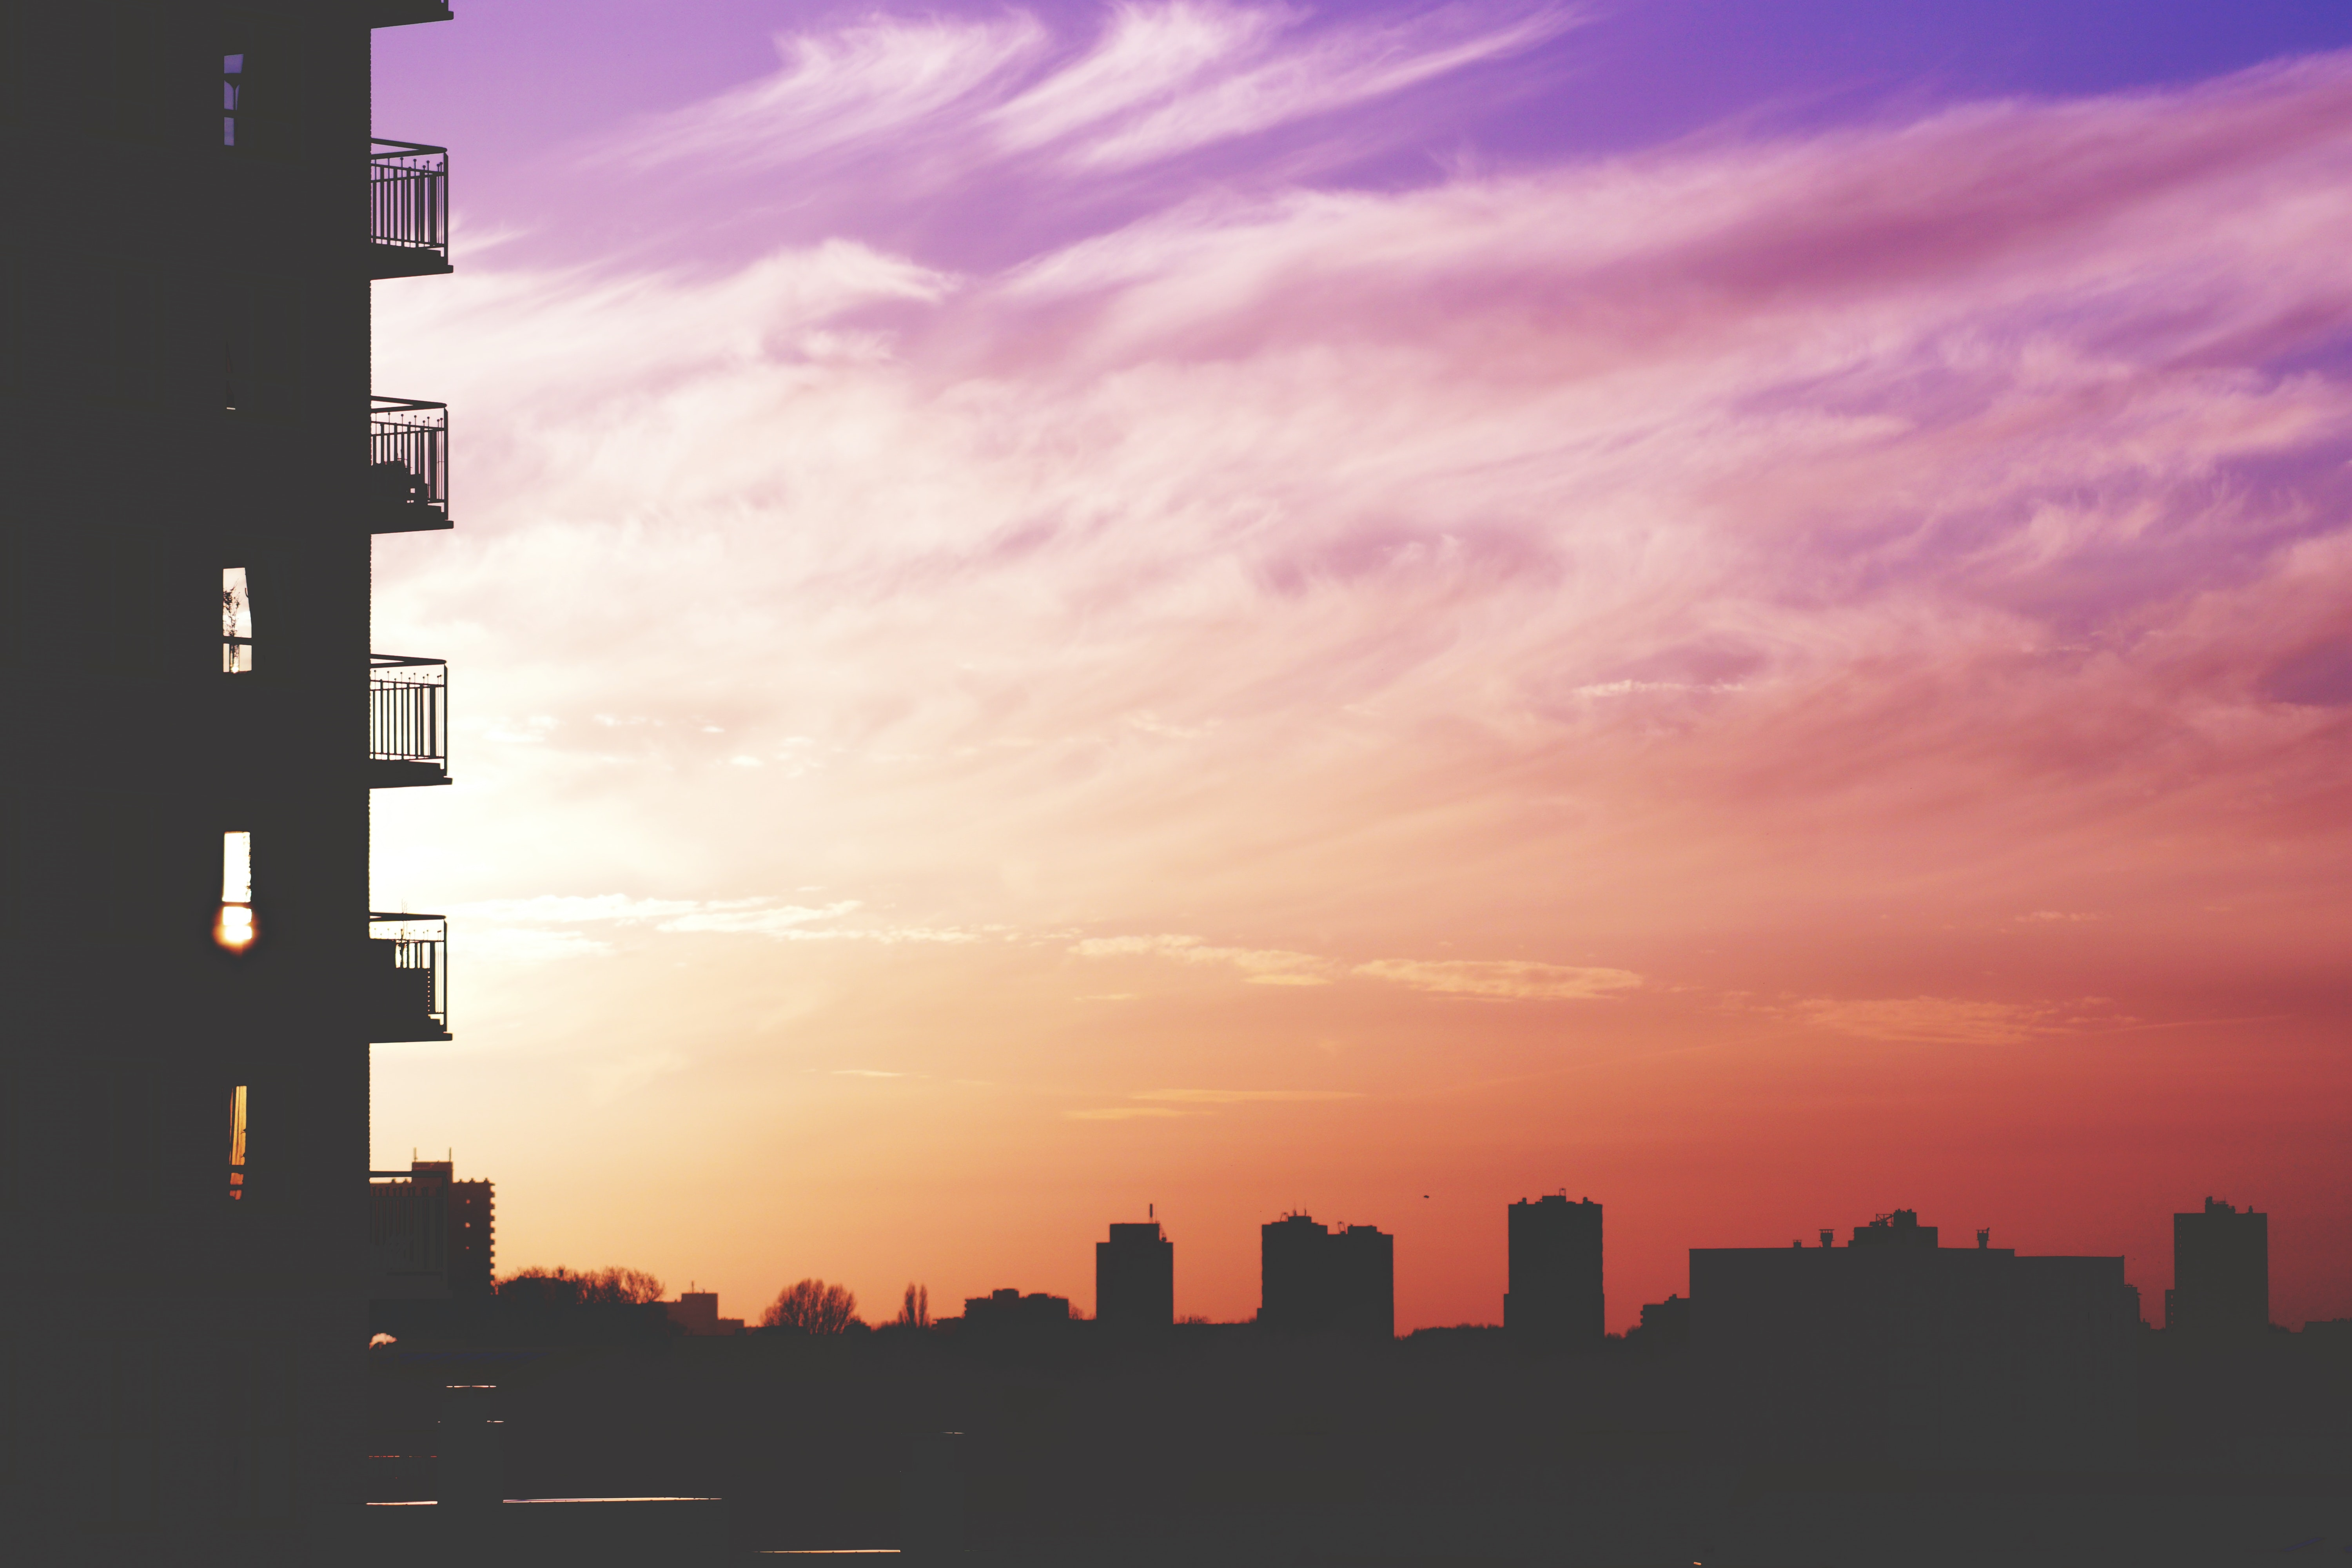 Silhouette Photo Of City Building During Sunset 183 Free